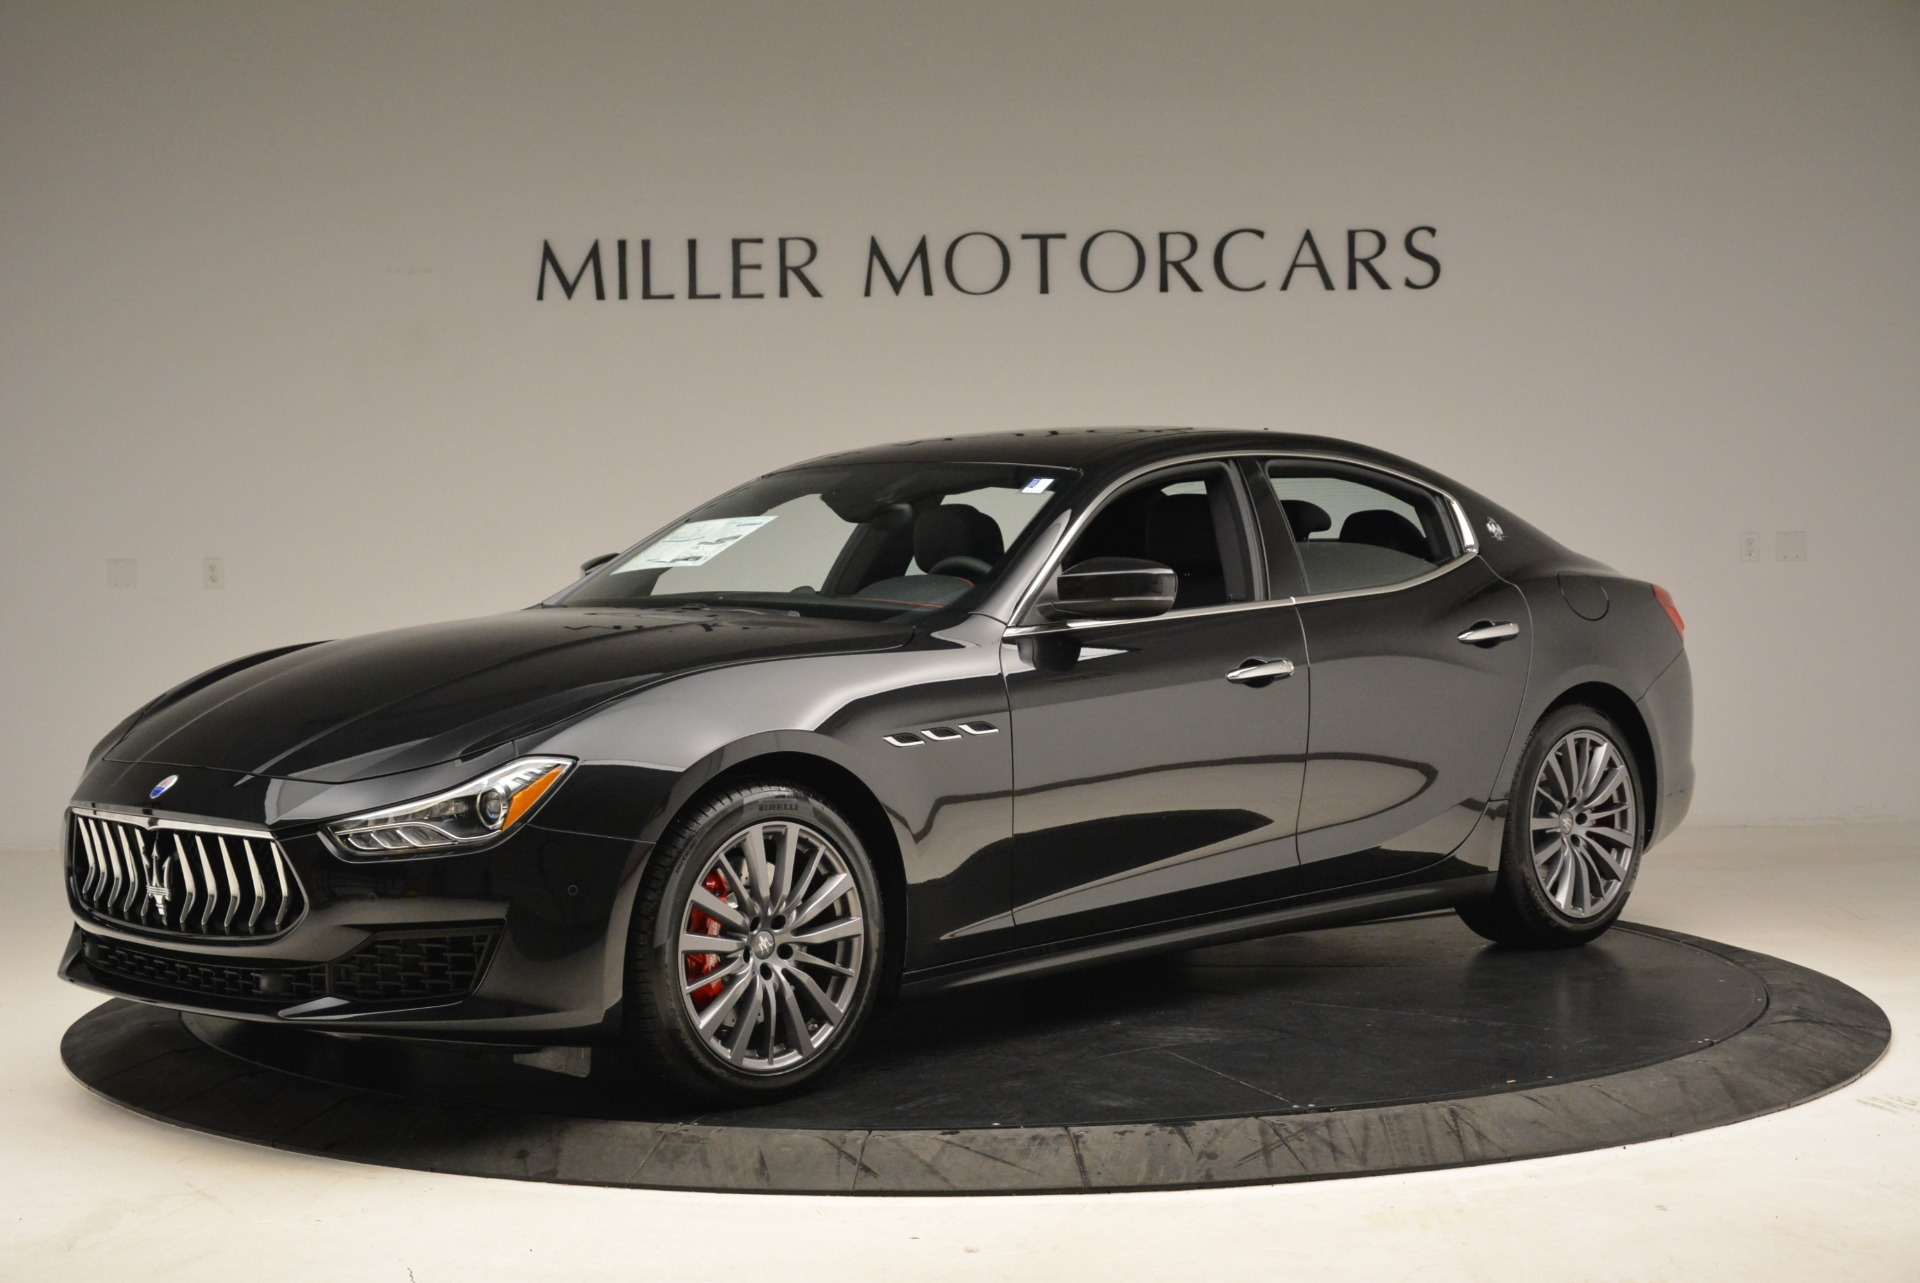 Used 2018 Maserati Ghibli S Q4 for sale $55,900 at Bentley Greenwich in Greenwich CT 06830 1